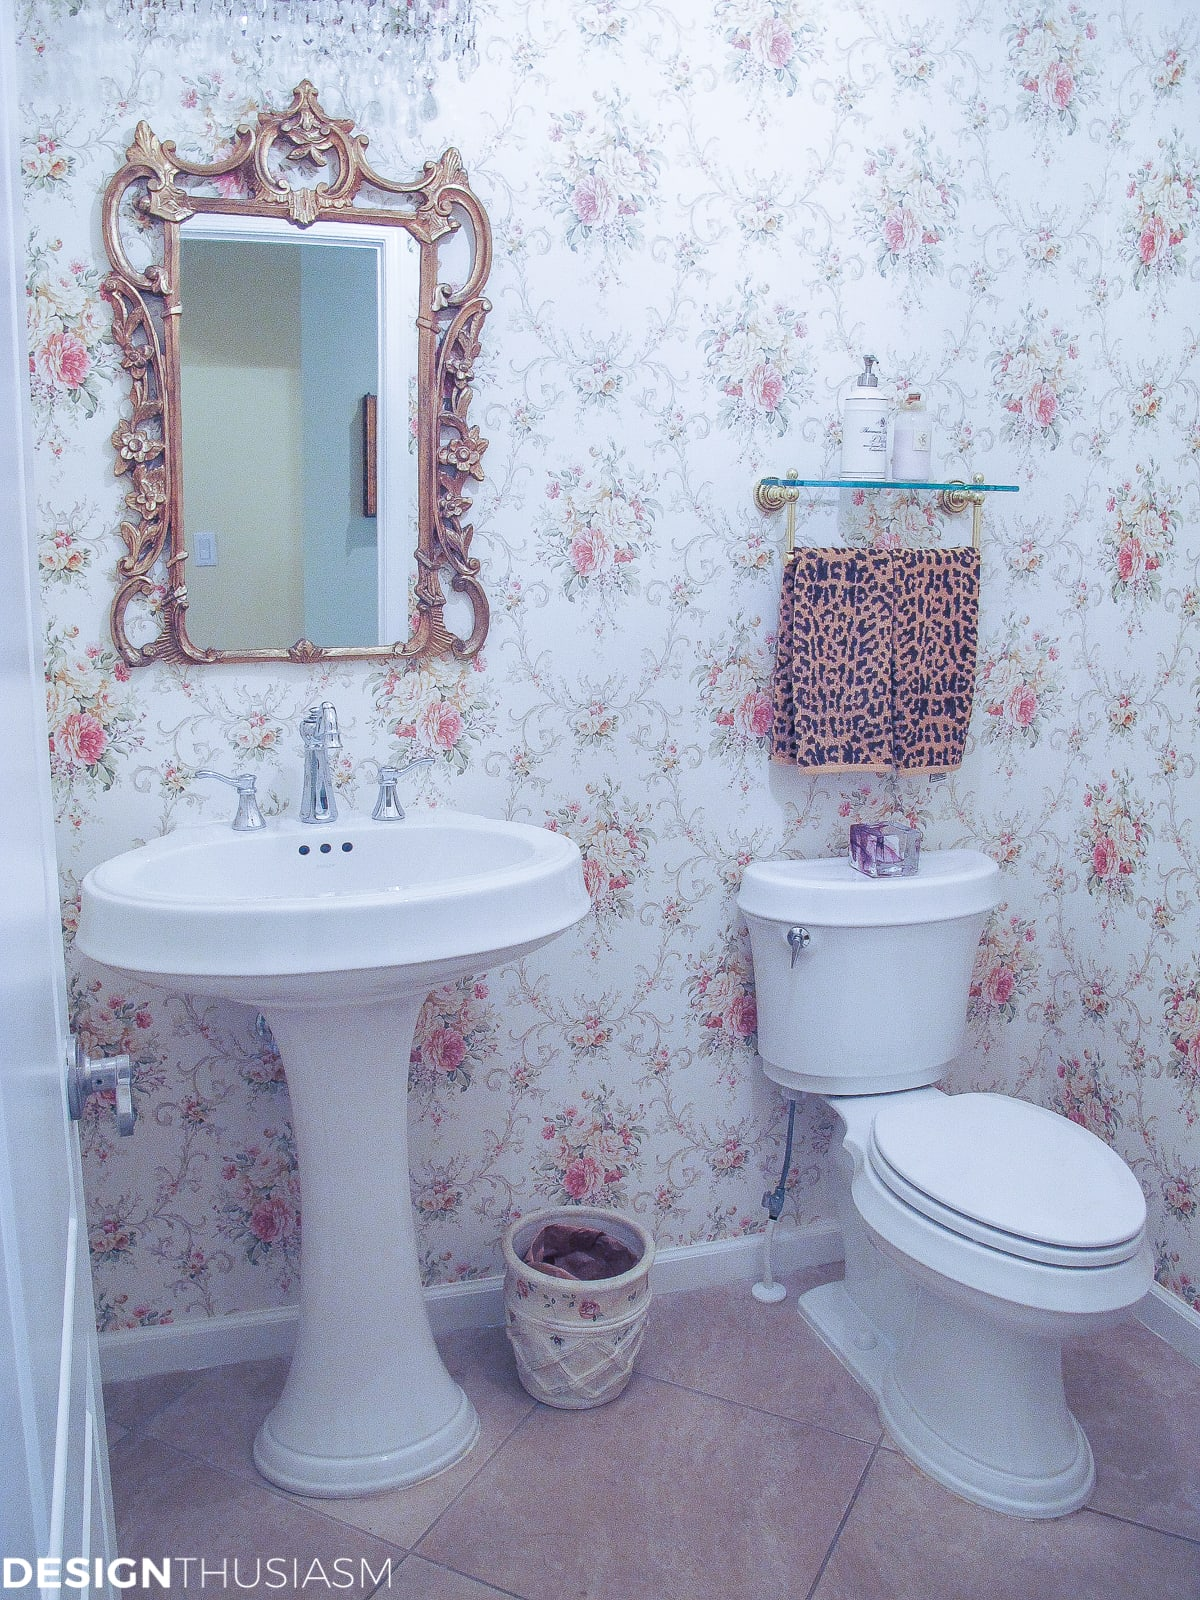 Transforming a Bland Powder Room into Lovely French Bathroom | Designthusiasm.com